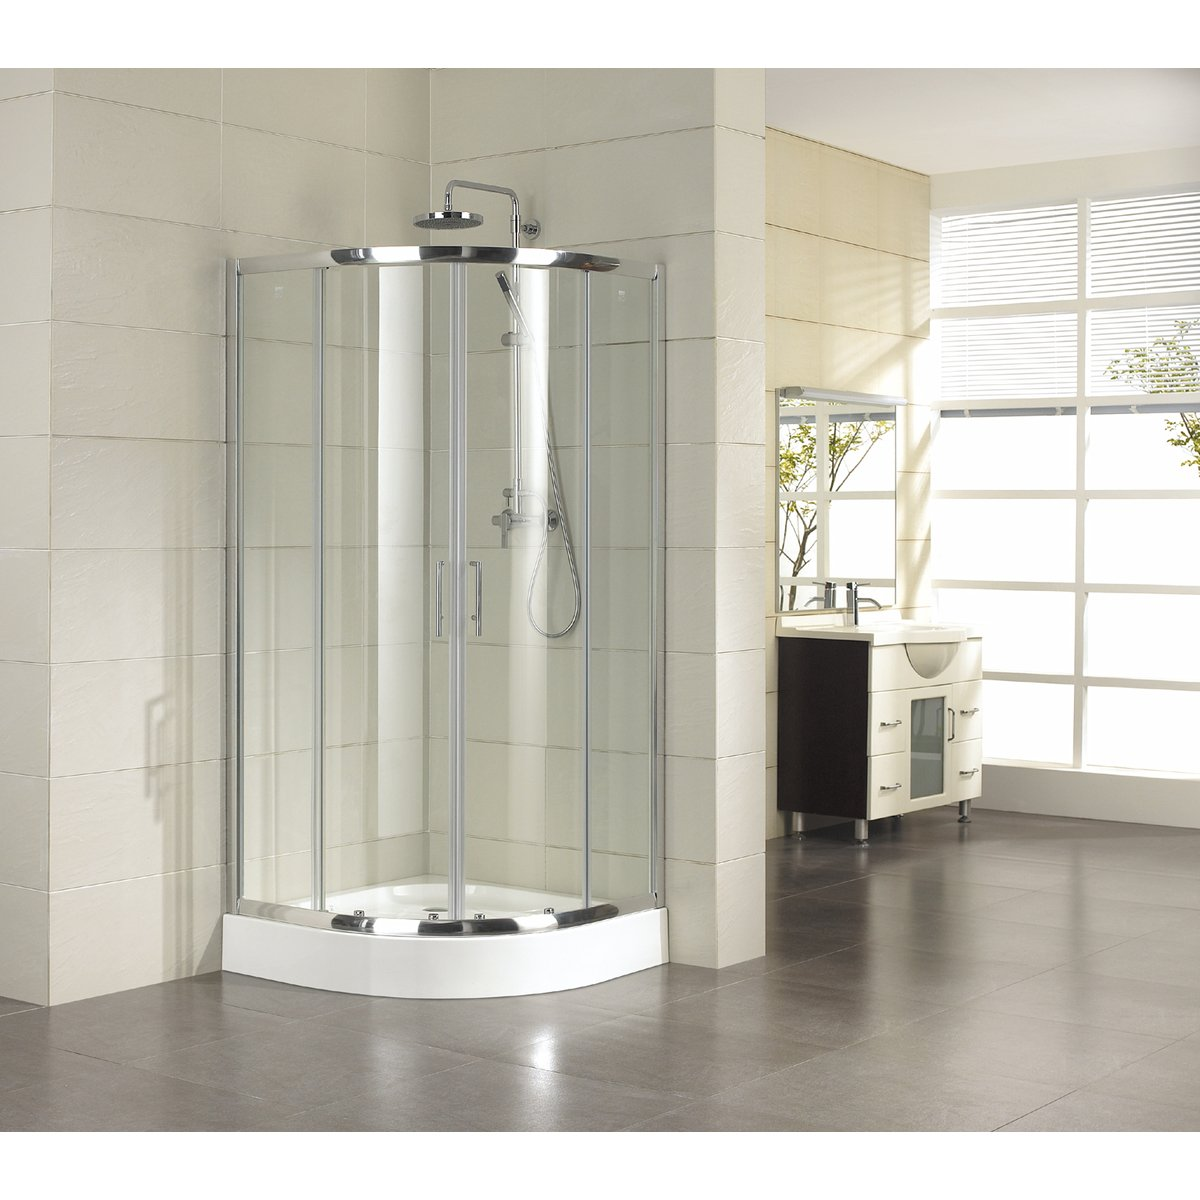 saniclass neptune 2142 cabine de douche 90x90x210cm profil chrom et vitre transparente avec. Black Bedroom Furniture Sets. Home Design Ideas